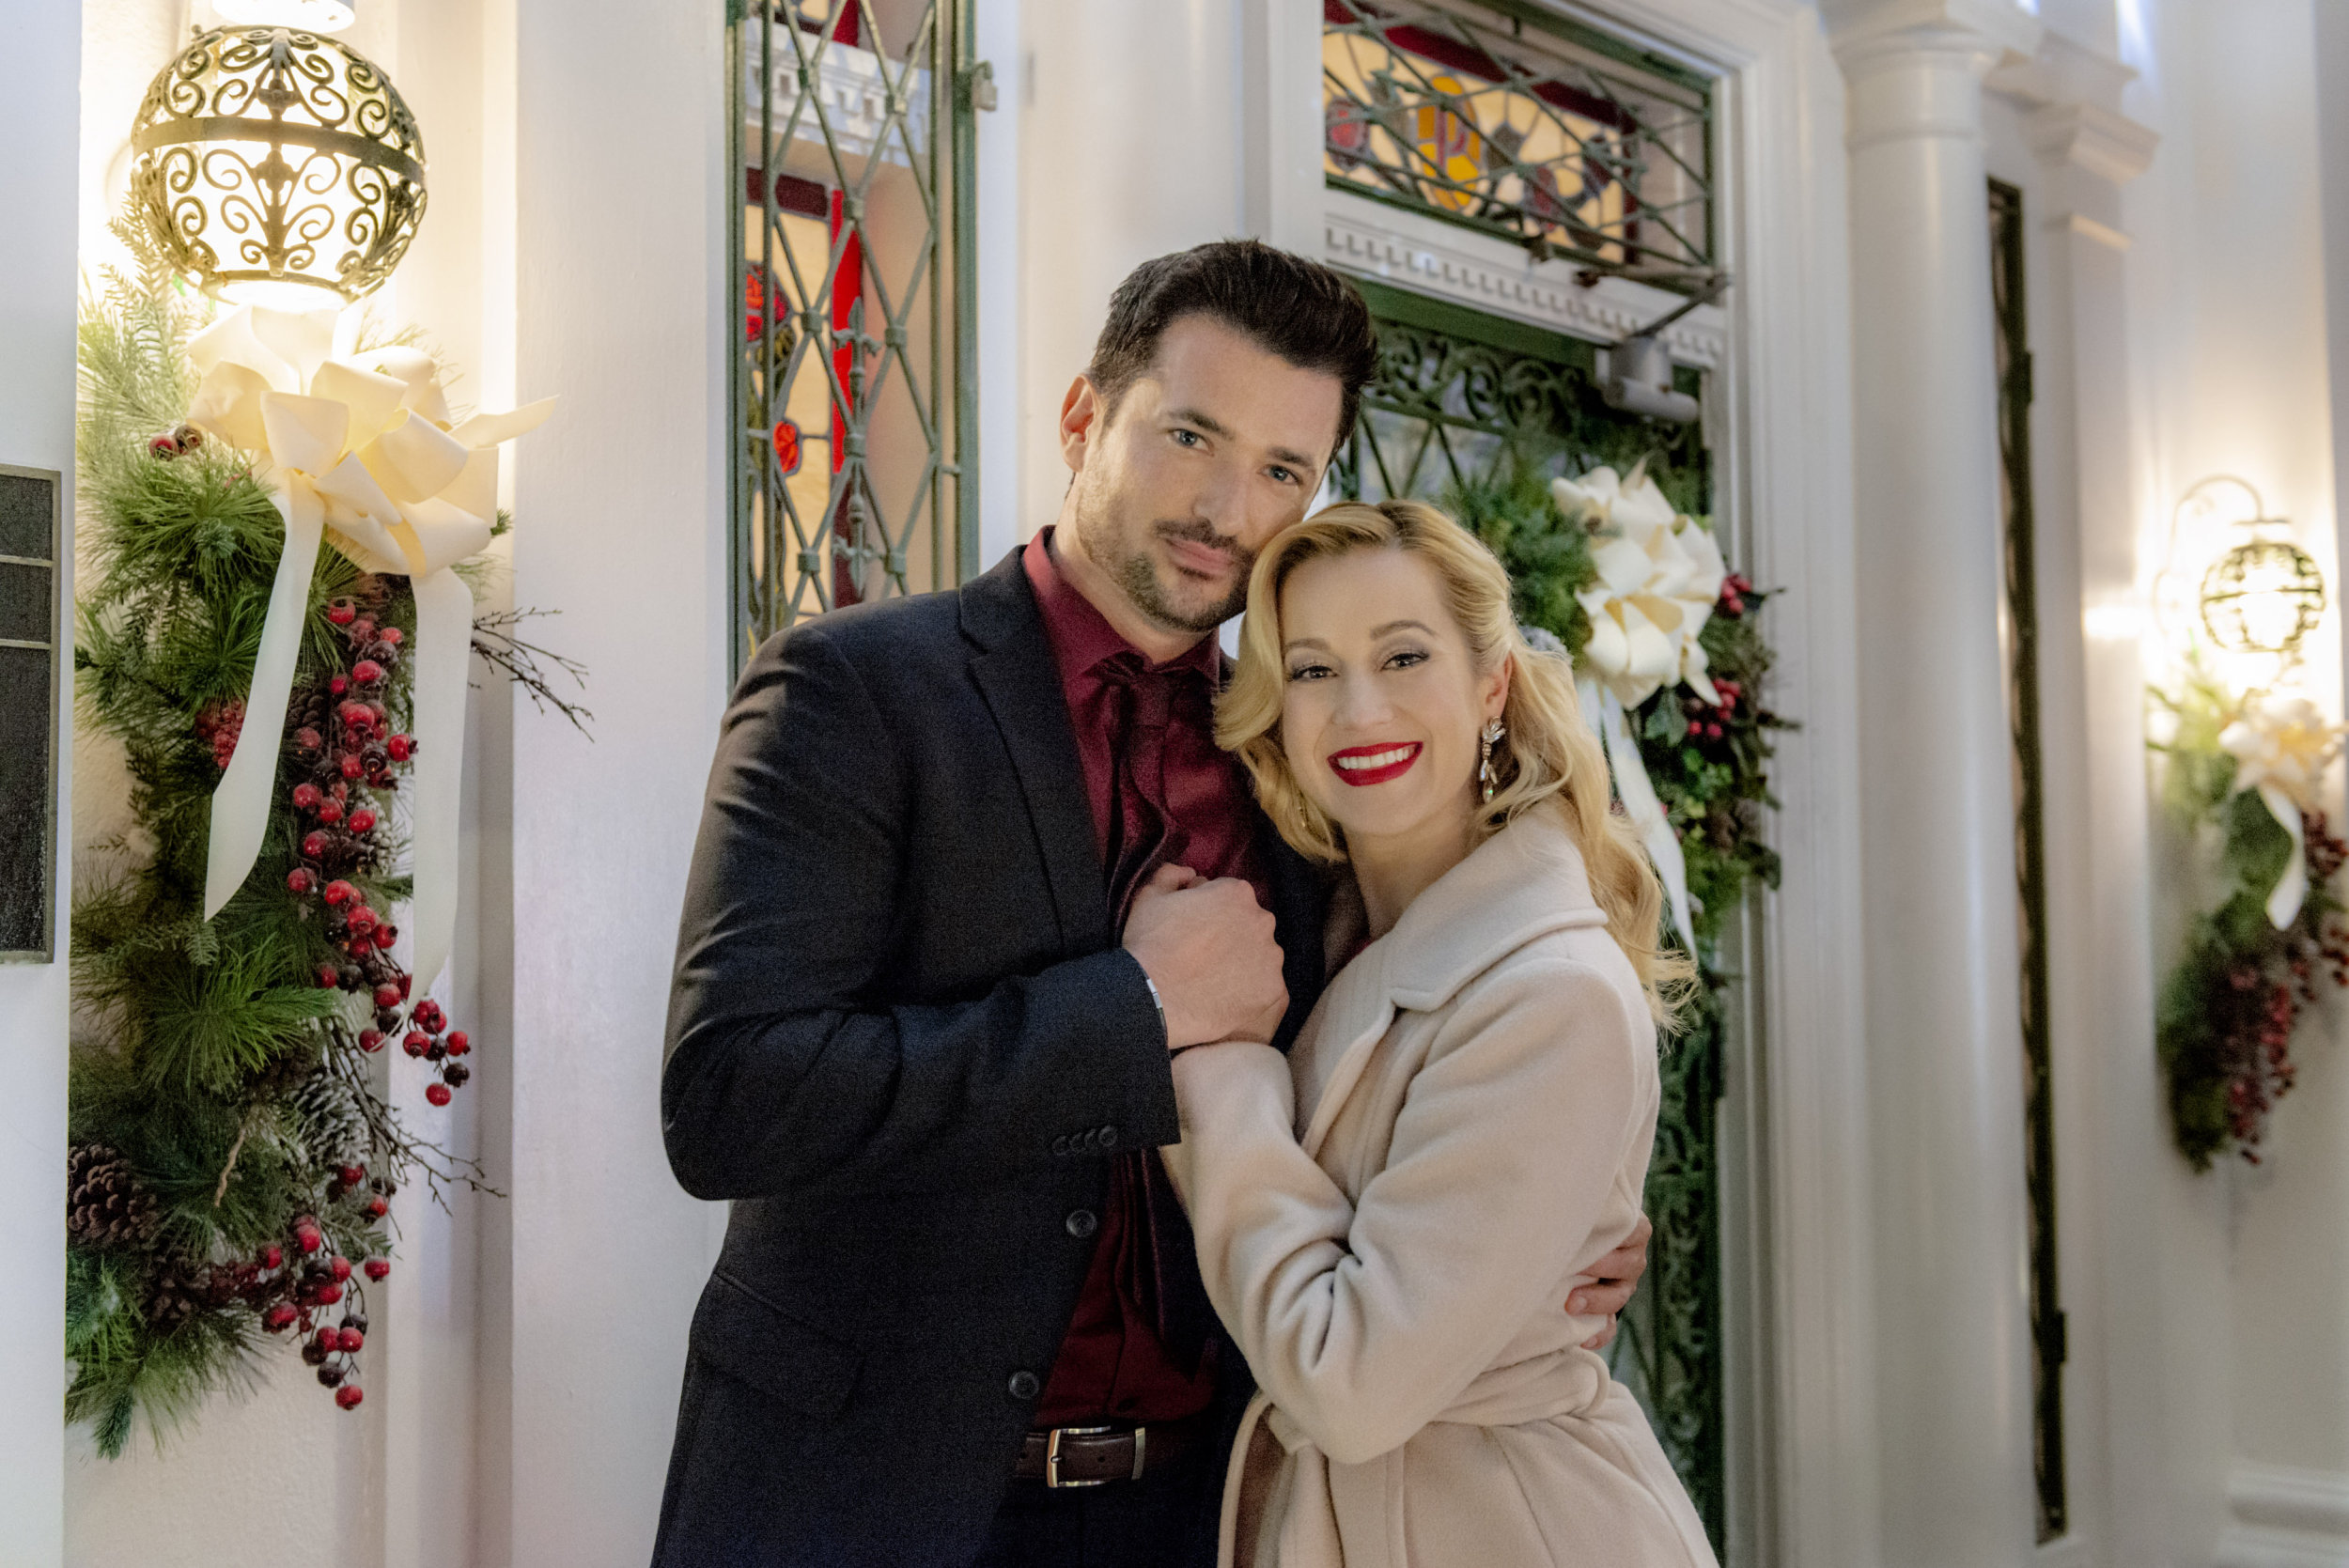 Christmas At Graceland Hallmark.Christmas At Graceland Cast Hallmark Channel